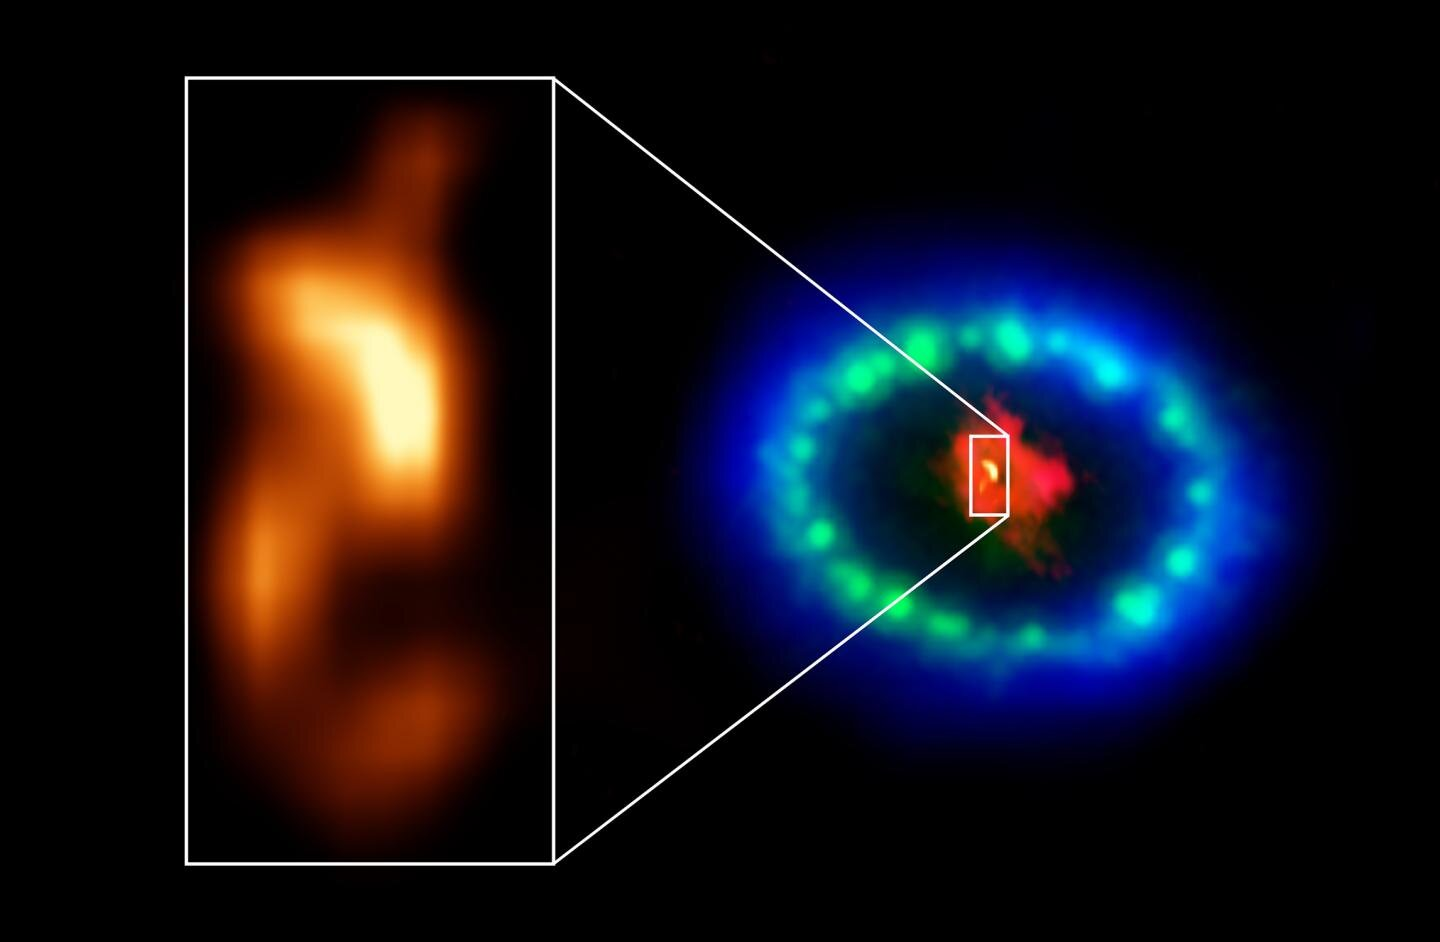 Credit: ALMA (ESO/NAOJ/NRAO), P. Cigan and R. Indebetouw; NRAO/AUI/NSF, B. Saxton; NASA/ESA